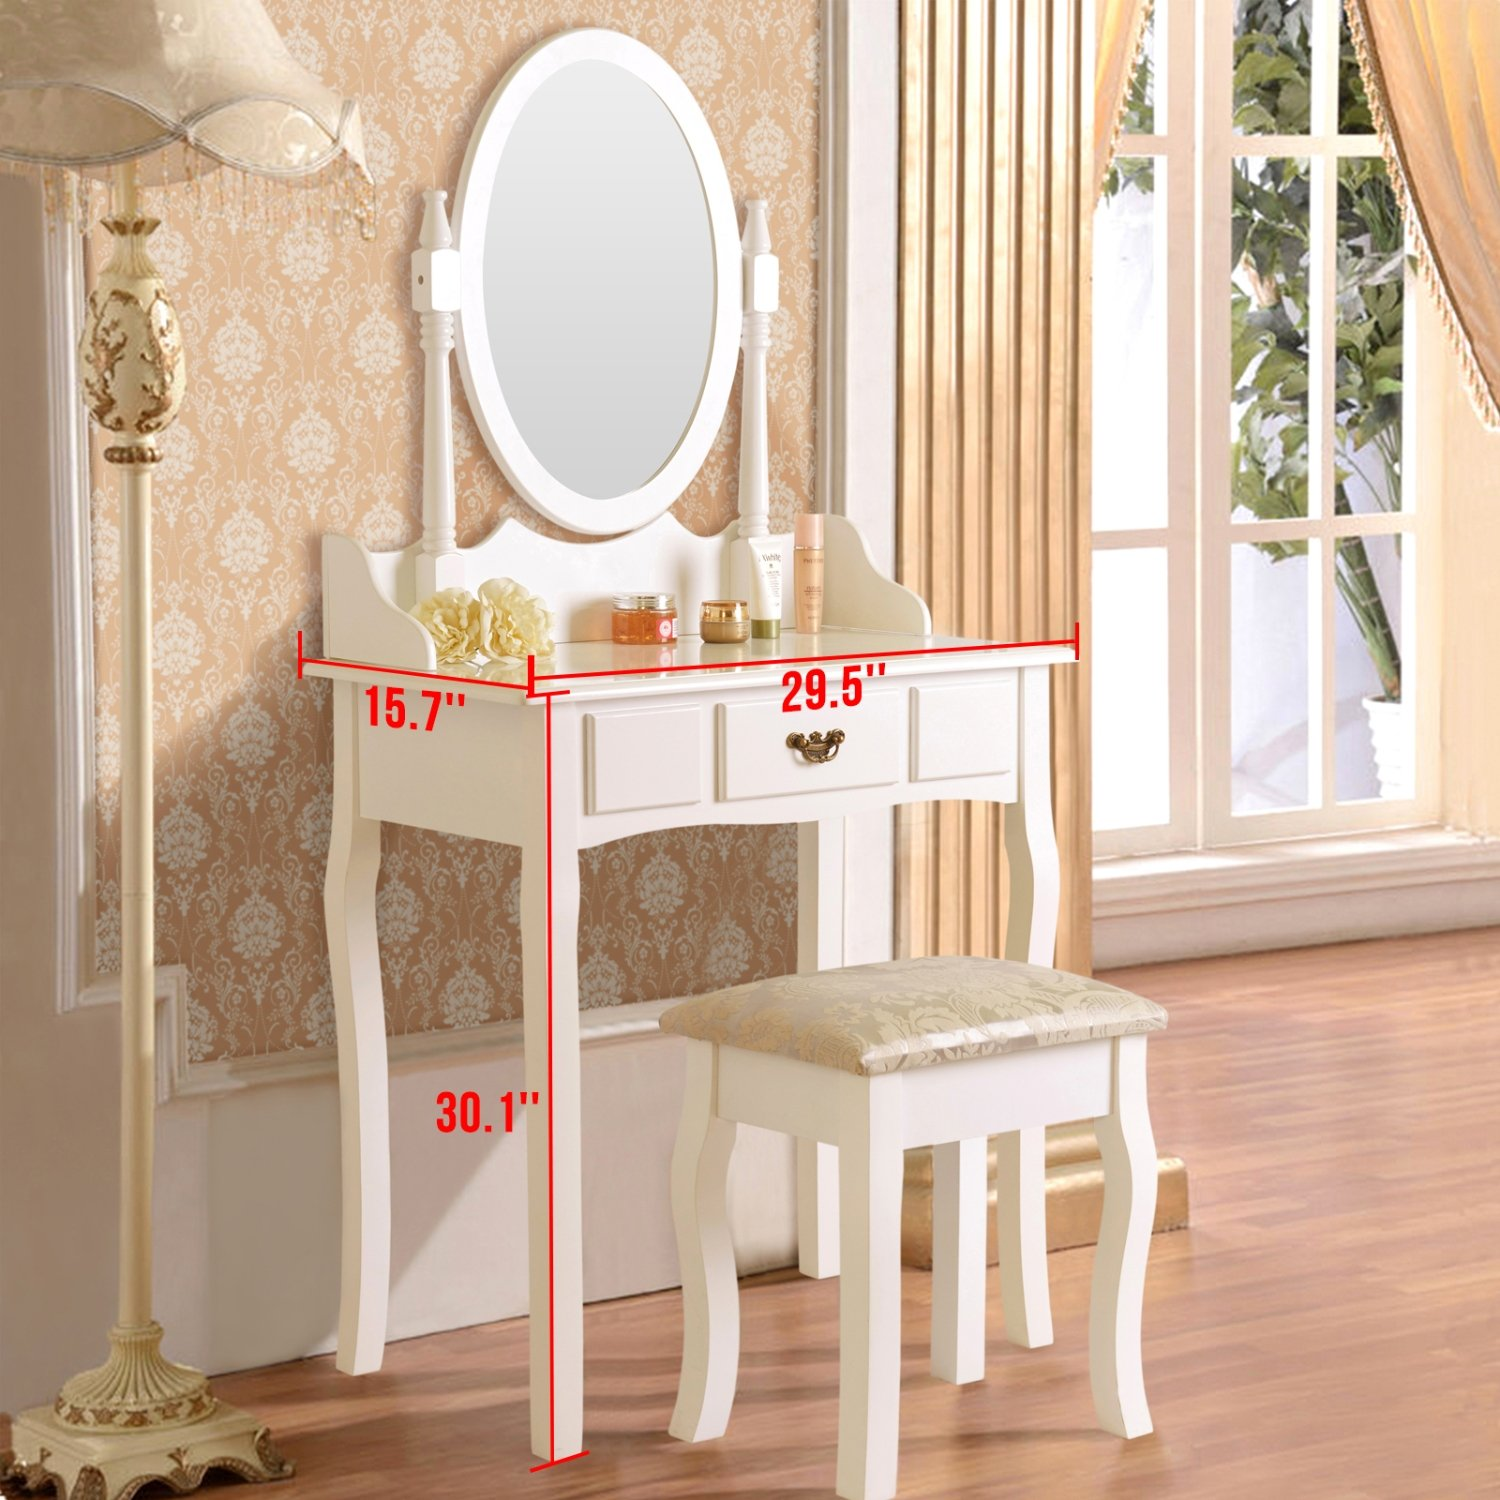 Amazon elegance dressing table makeup vanity table with stool amazon elegance dressing table makeup vanity table with stool set oval mirror white kitchen dining geotapseo Choice Image